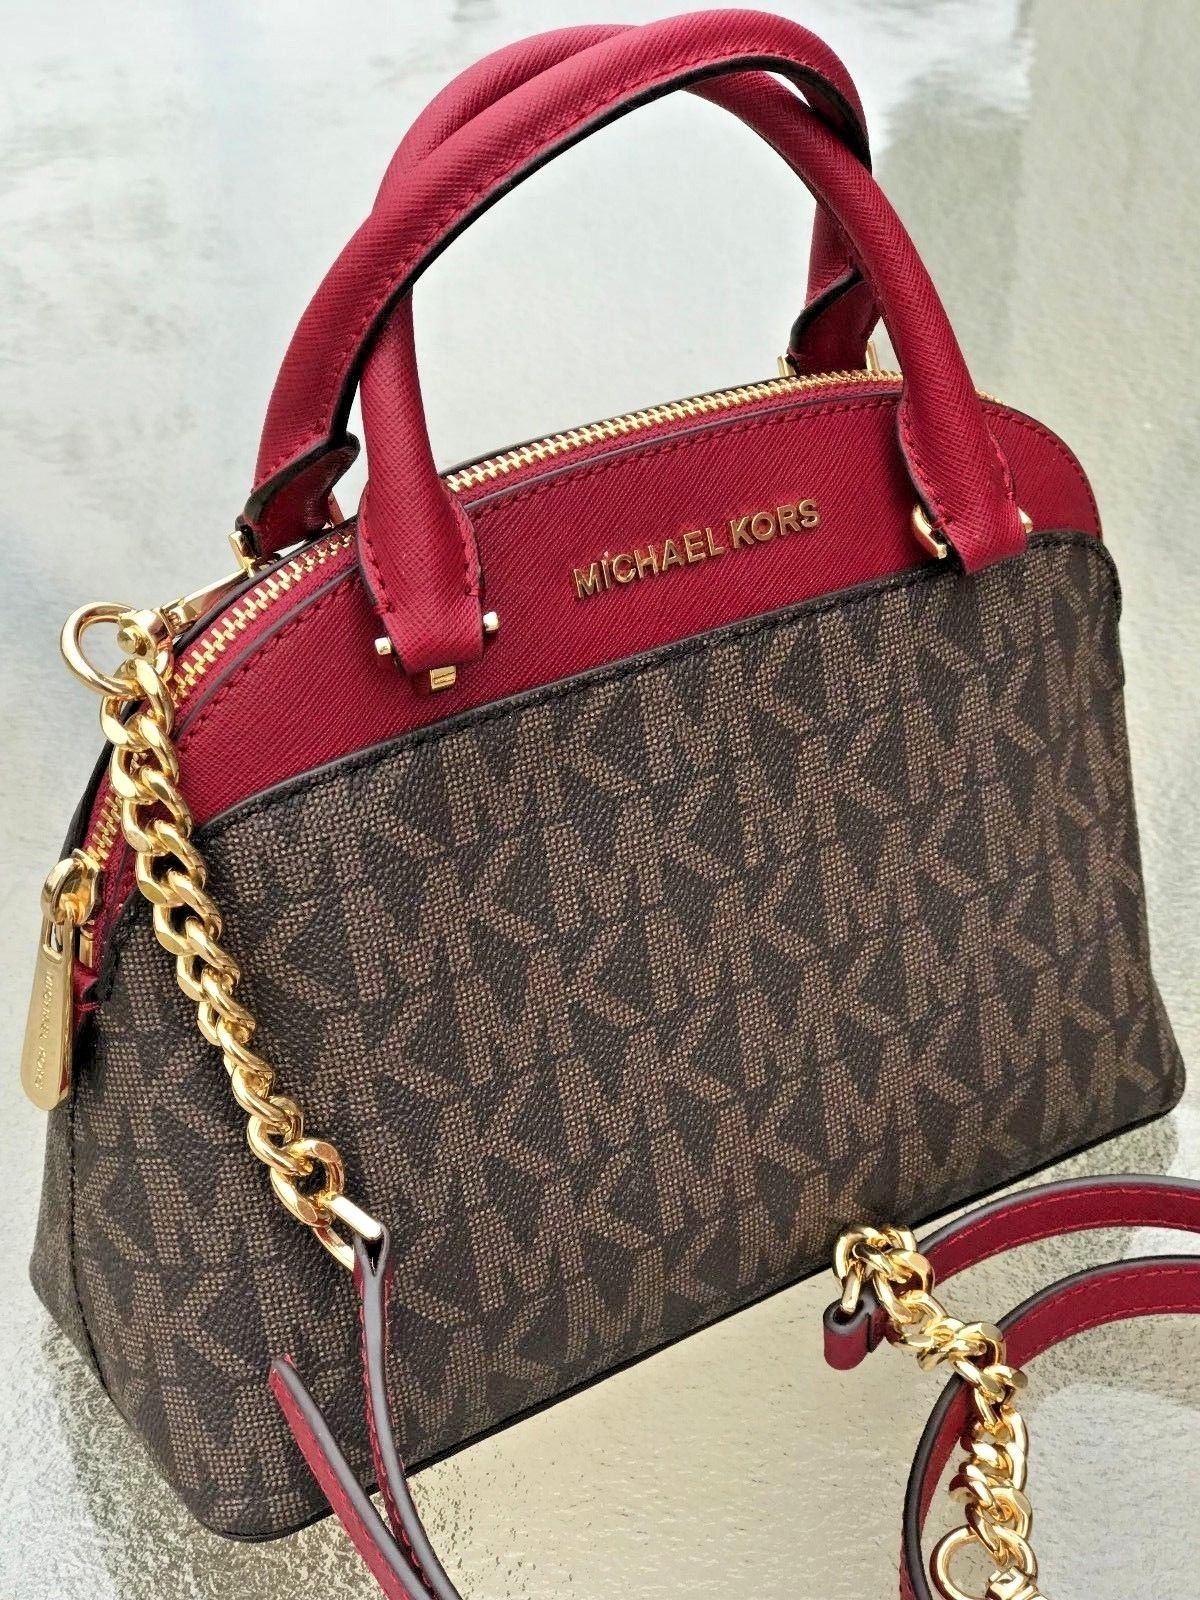 8ad13eafefe7 Michael Kors Emmy Small Cindy Dome Satchel Crossbody Brown Signature MK  Cherry